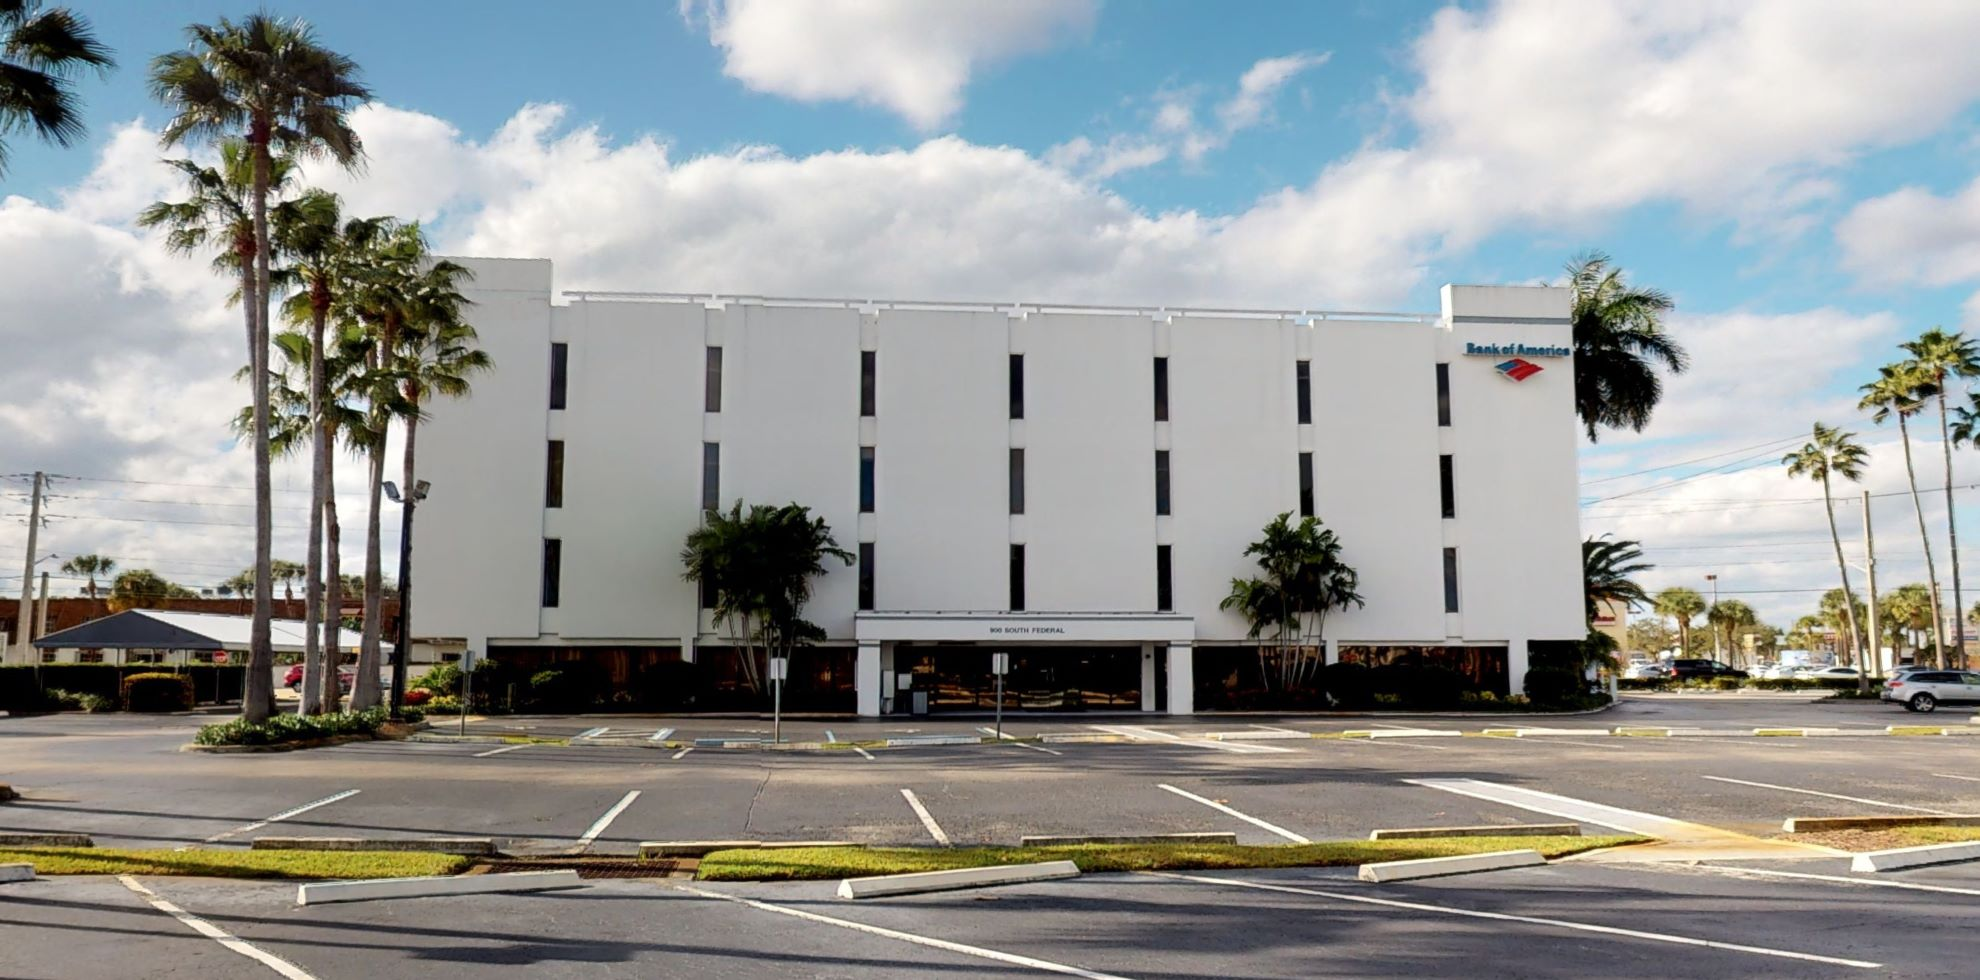 Bank of America financial center with walk-up ATM | 900 SE Federal Hwy, Stuart, FL 34994